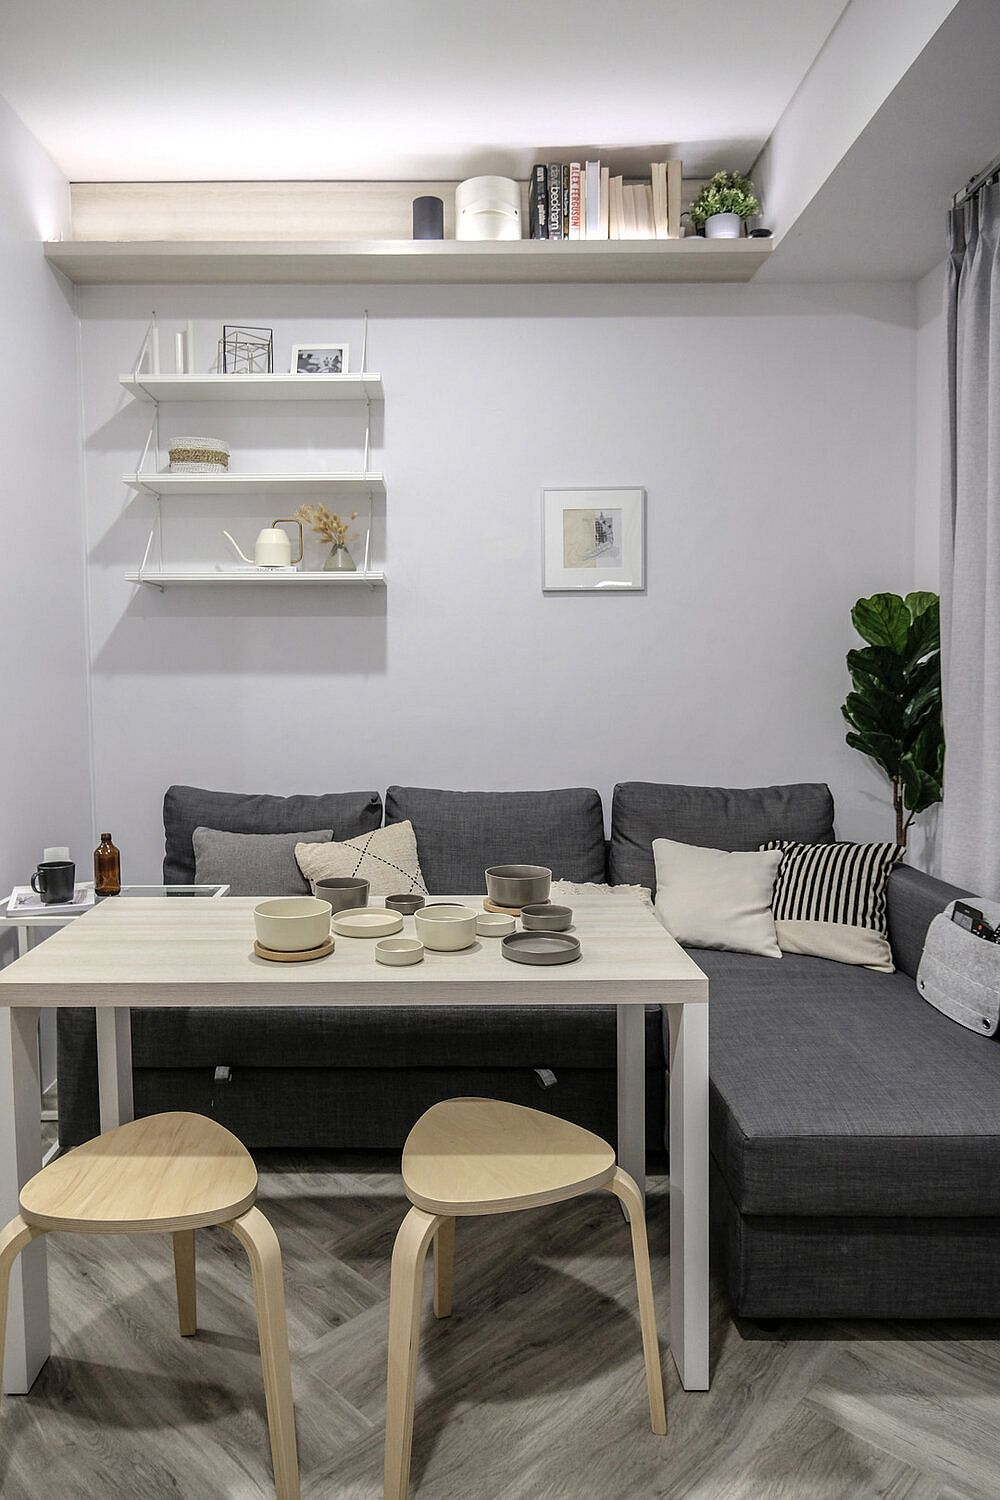 Dining-table-next-to-the-small-couch-can-be-tucked-away-with-ease-46732